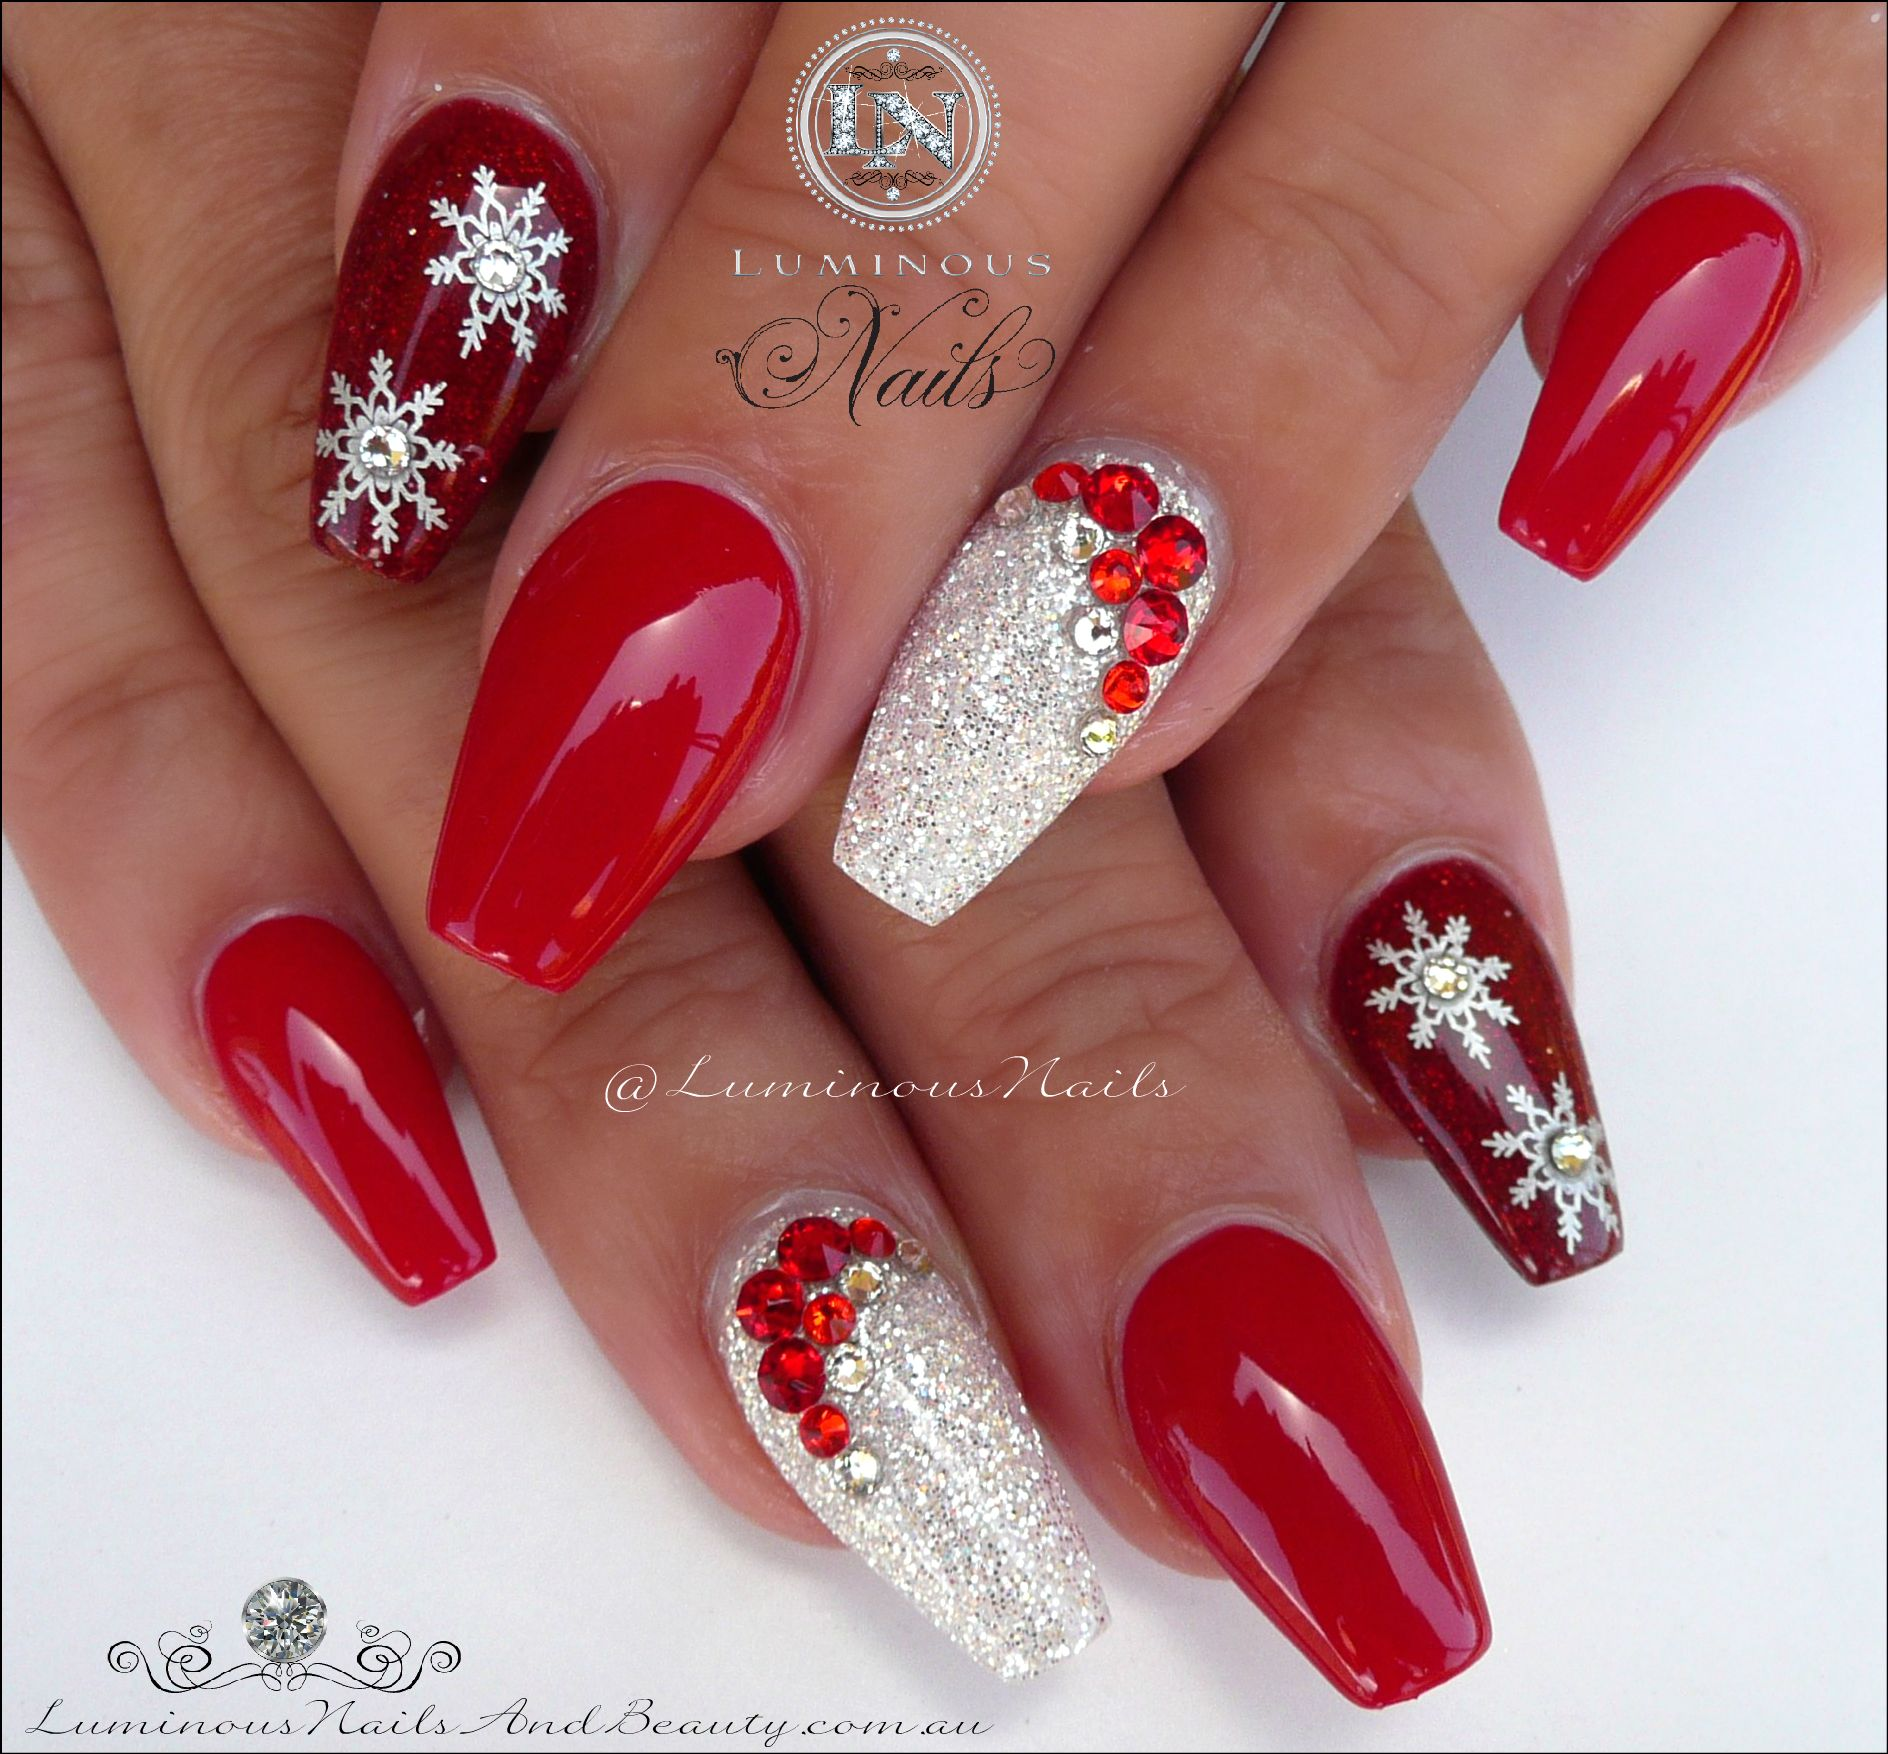 Red White Christmas Nails Acrylic Gel Nails Luminous | Nail Art ...